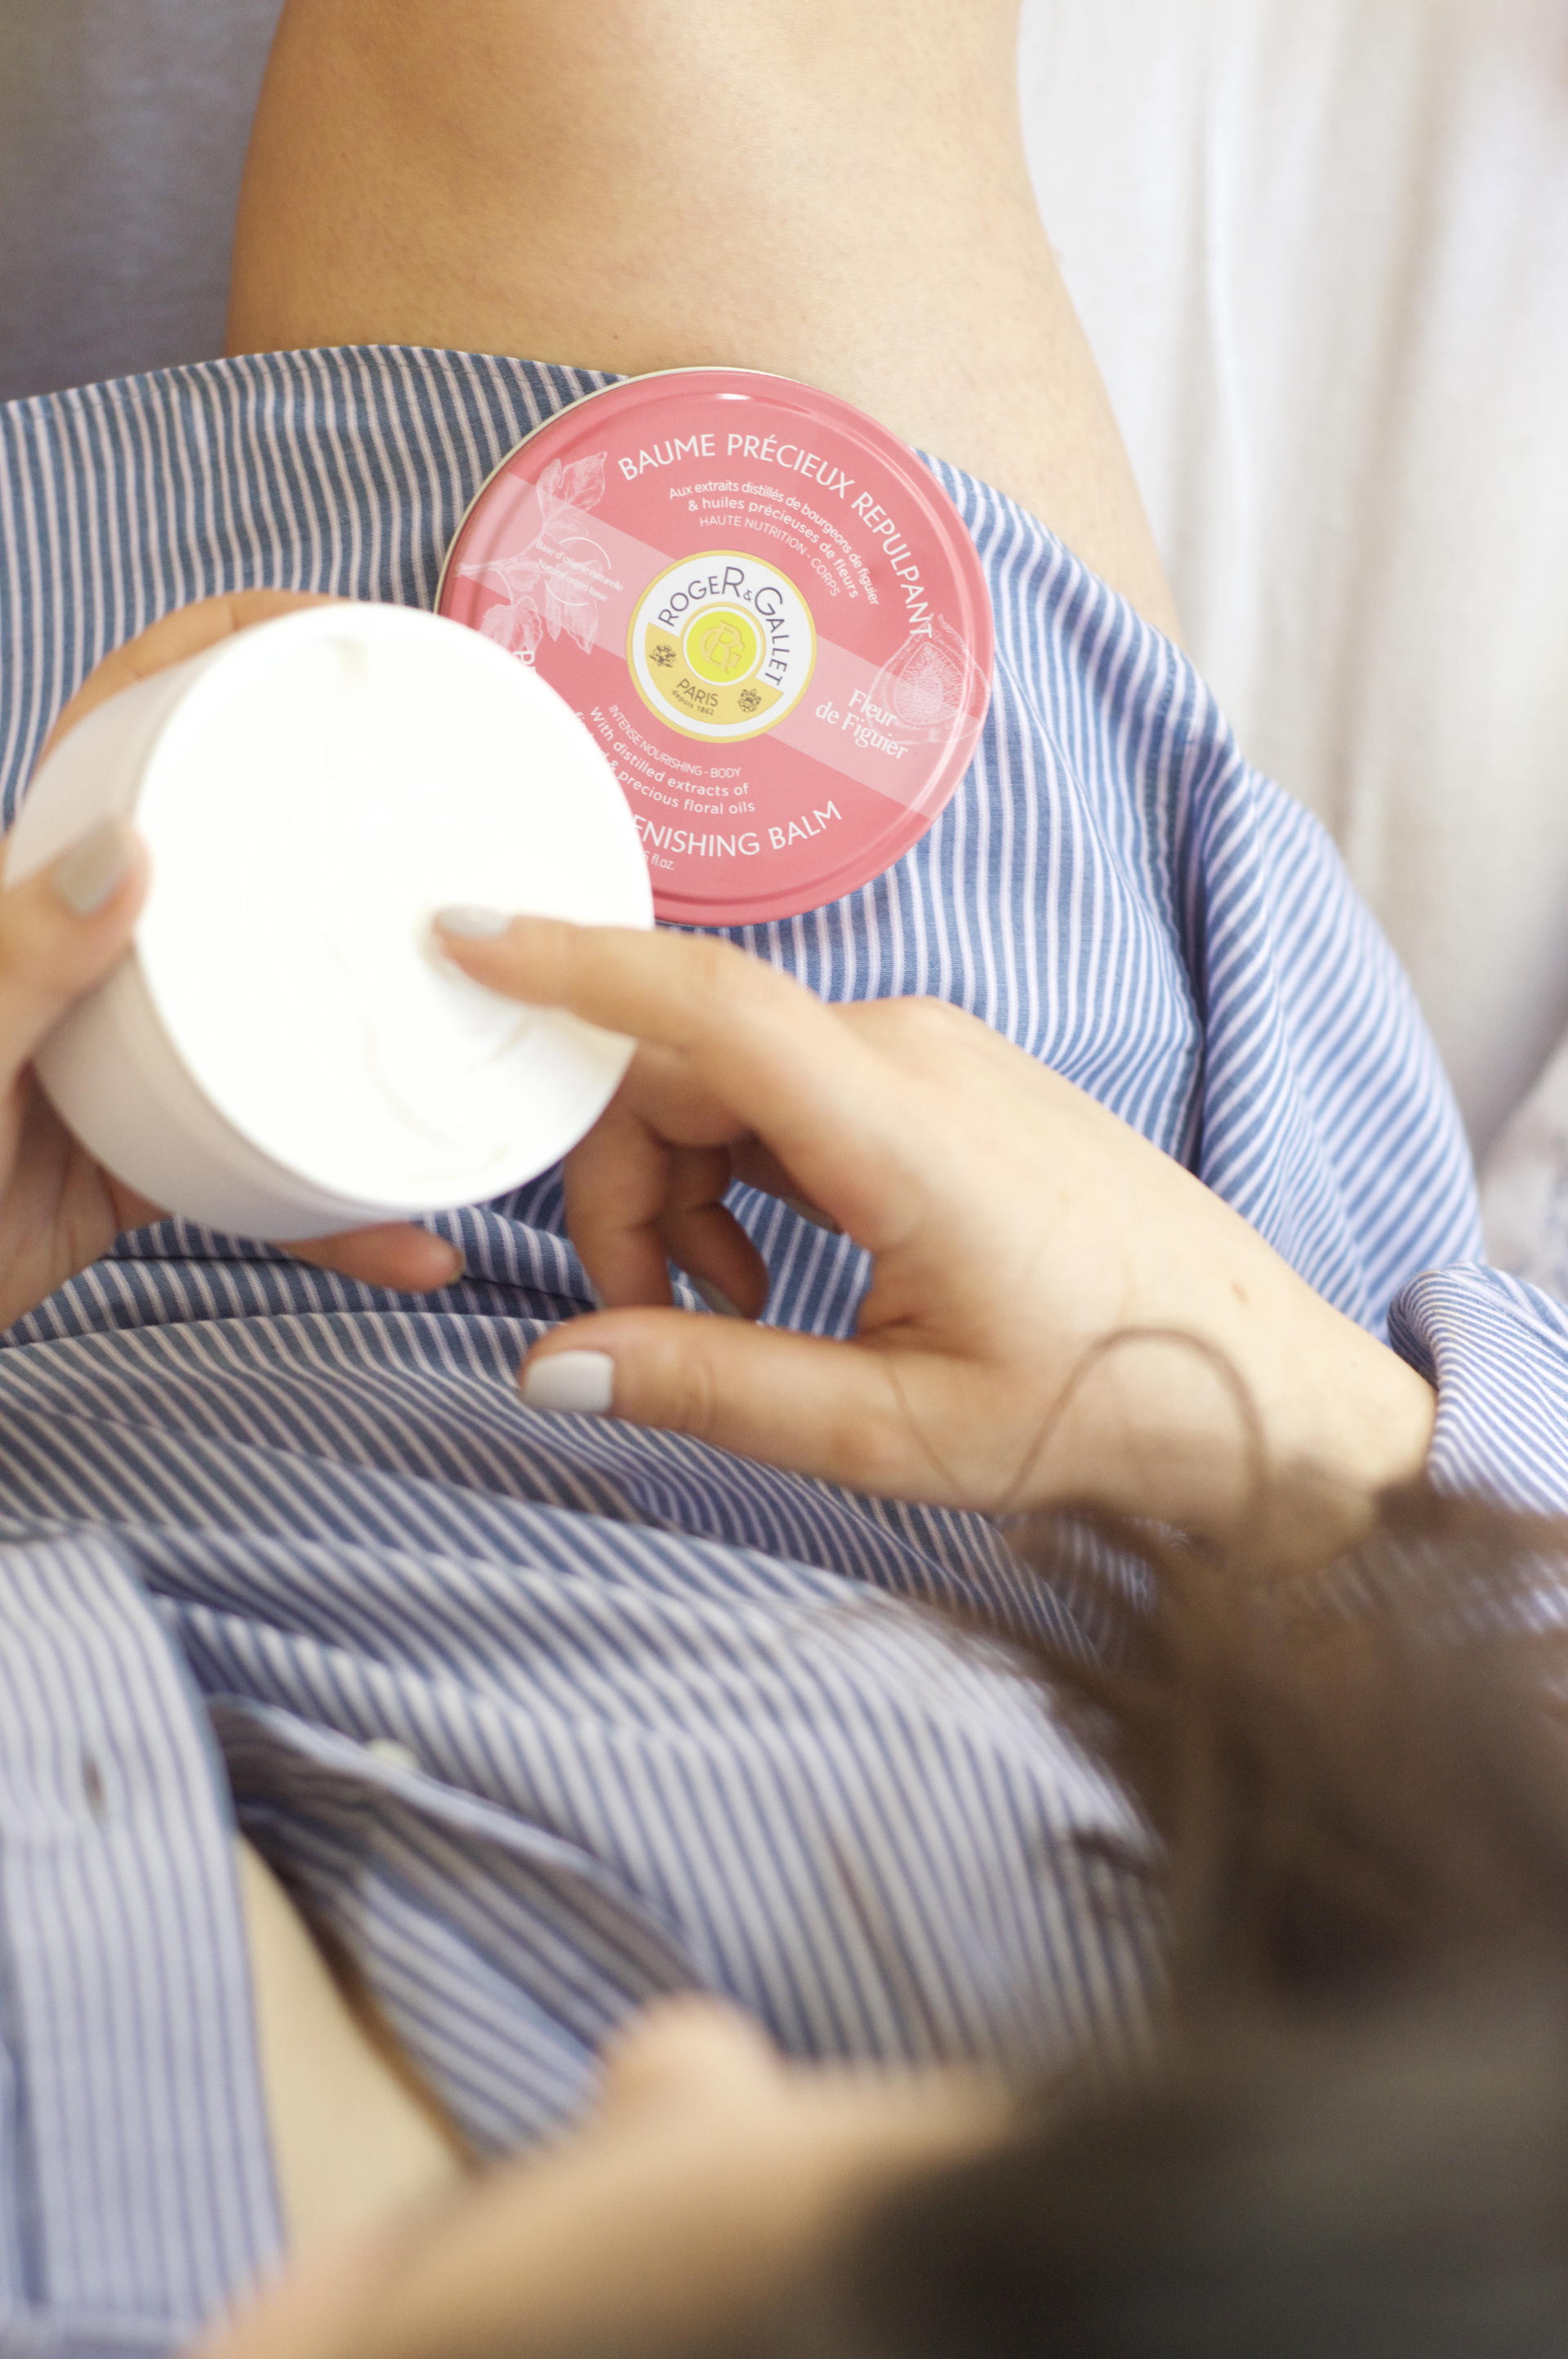 Made From Beauty using Roger & Gallet Fleur de Figuier Precious Replenishing Balm